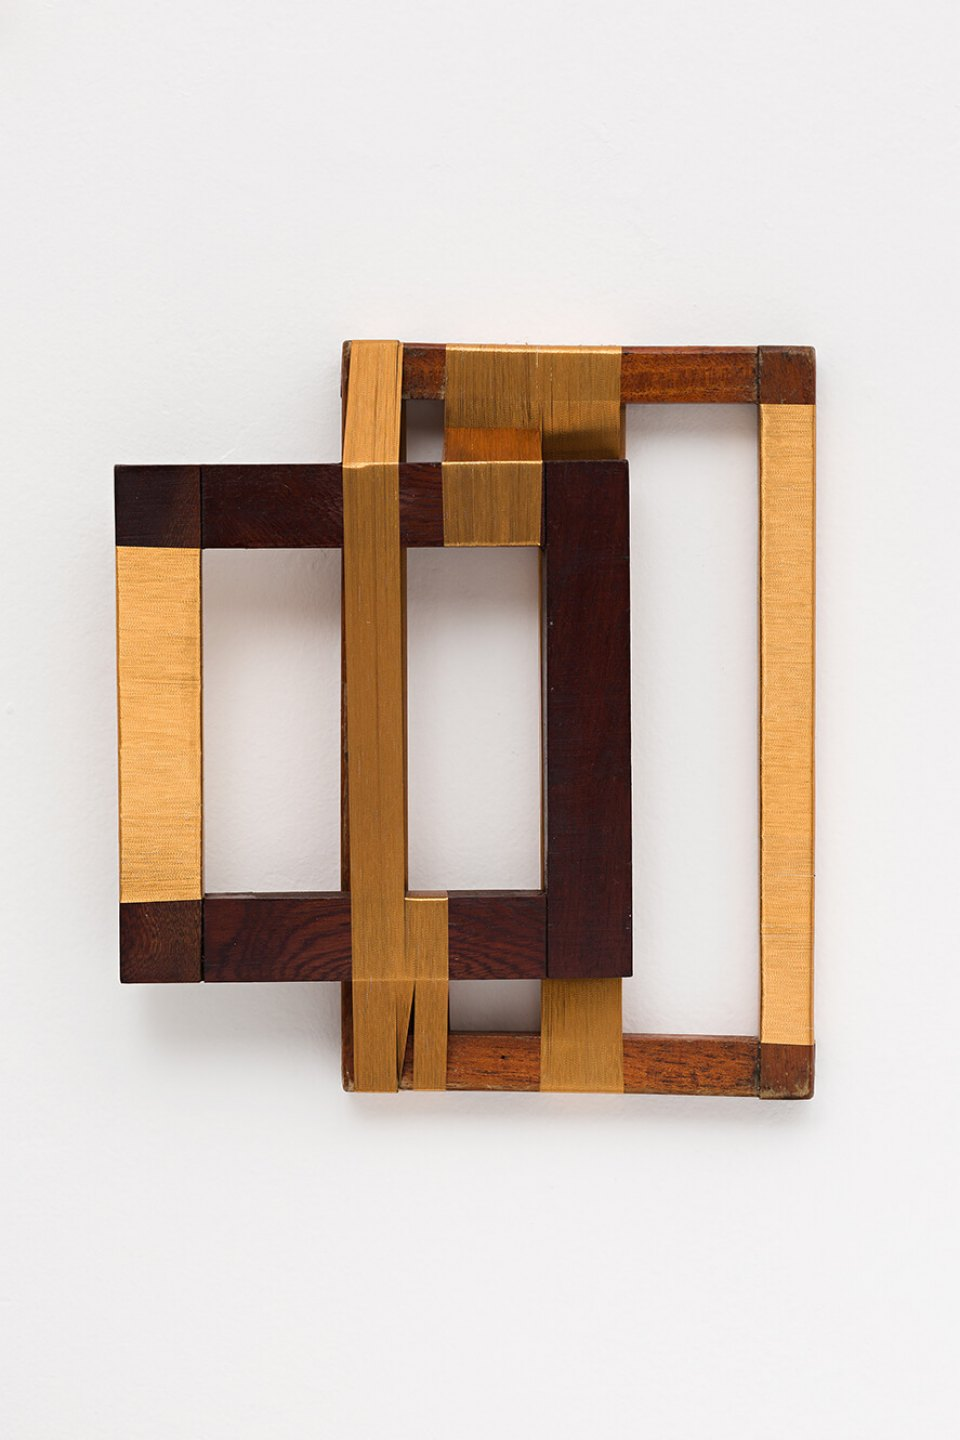 Paloma Bosquê, <em>Rhythm for 2</em>, 2013, lurex threads on wood frame,  26,5 × 24 × 5 cm - Mendes Wood DM